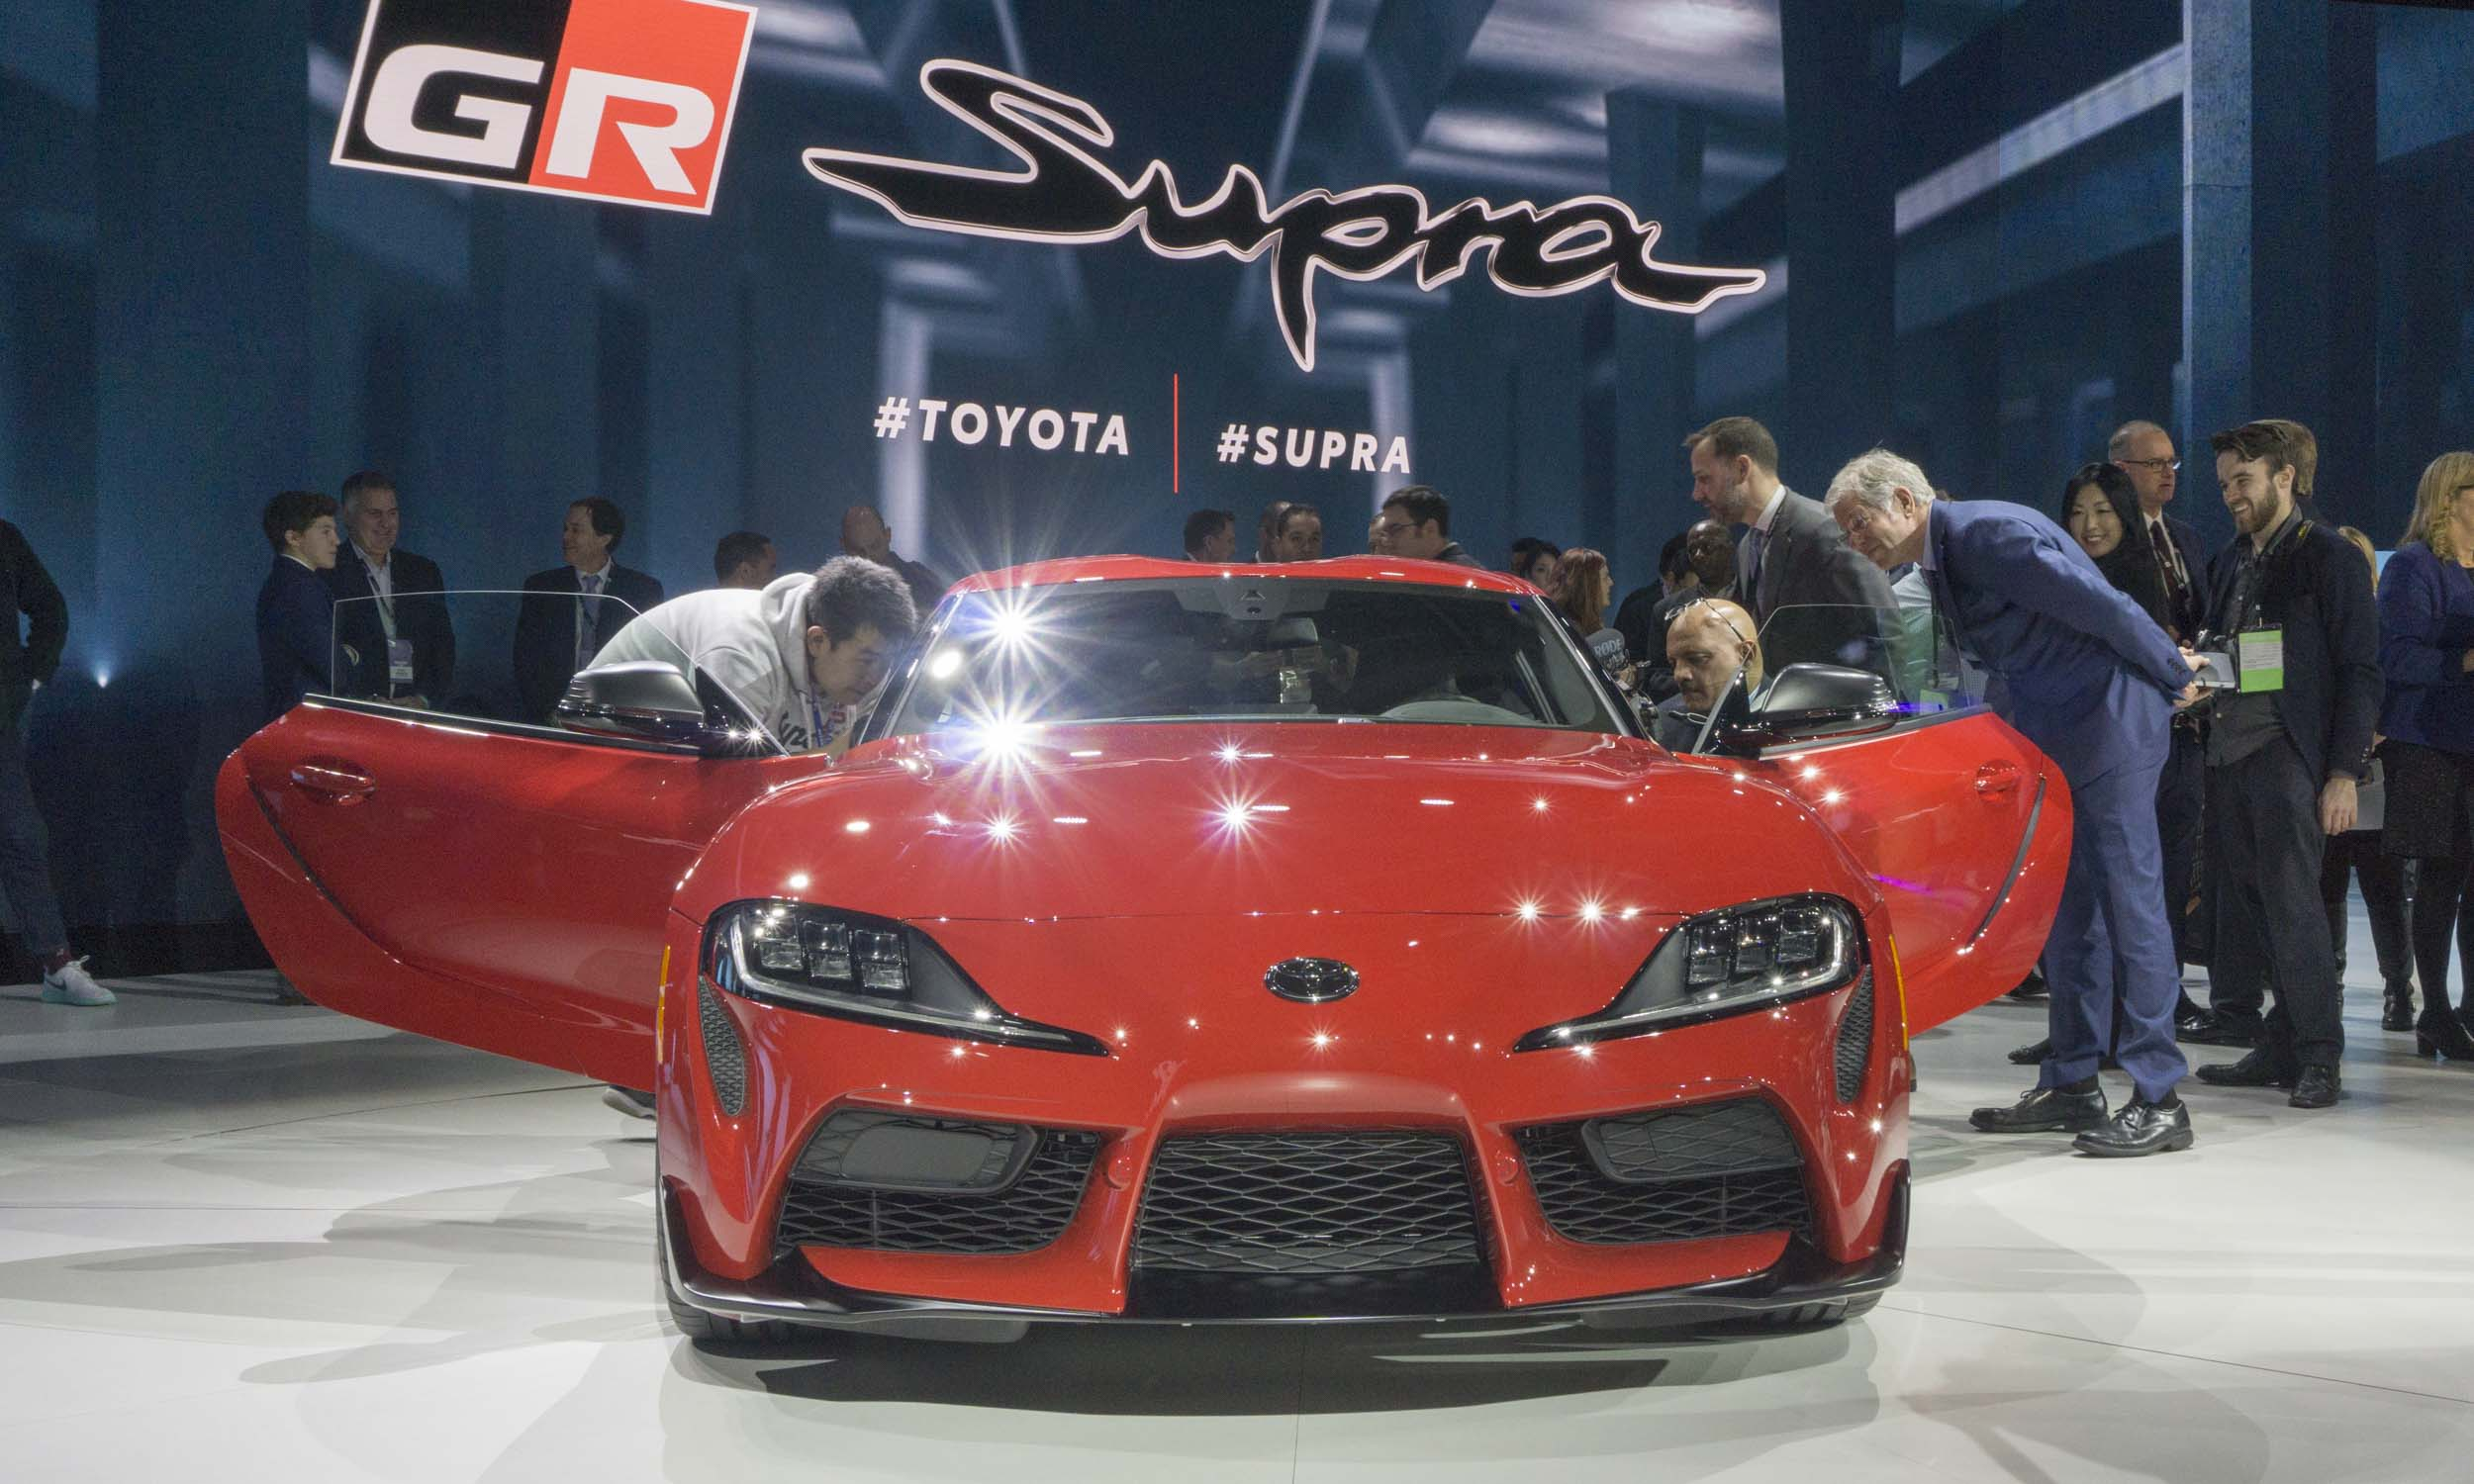 2019 Detroit Auto Show: Photo Highlights